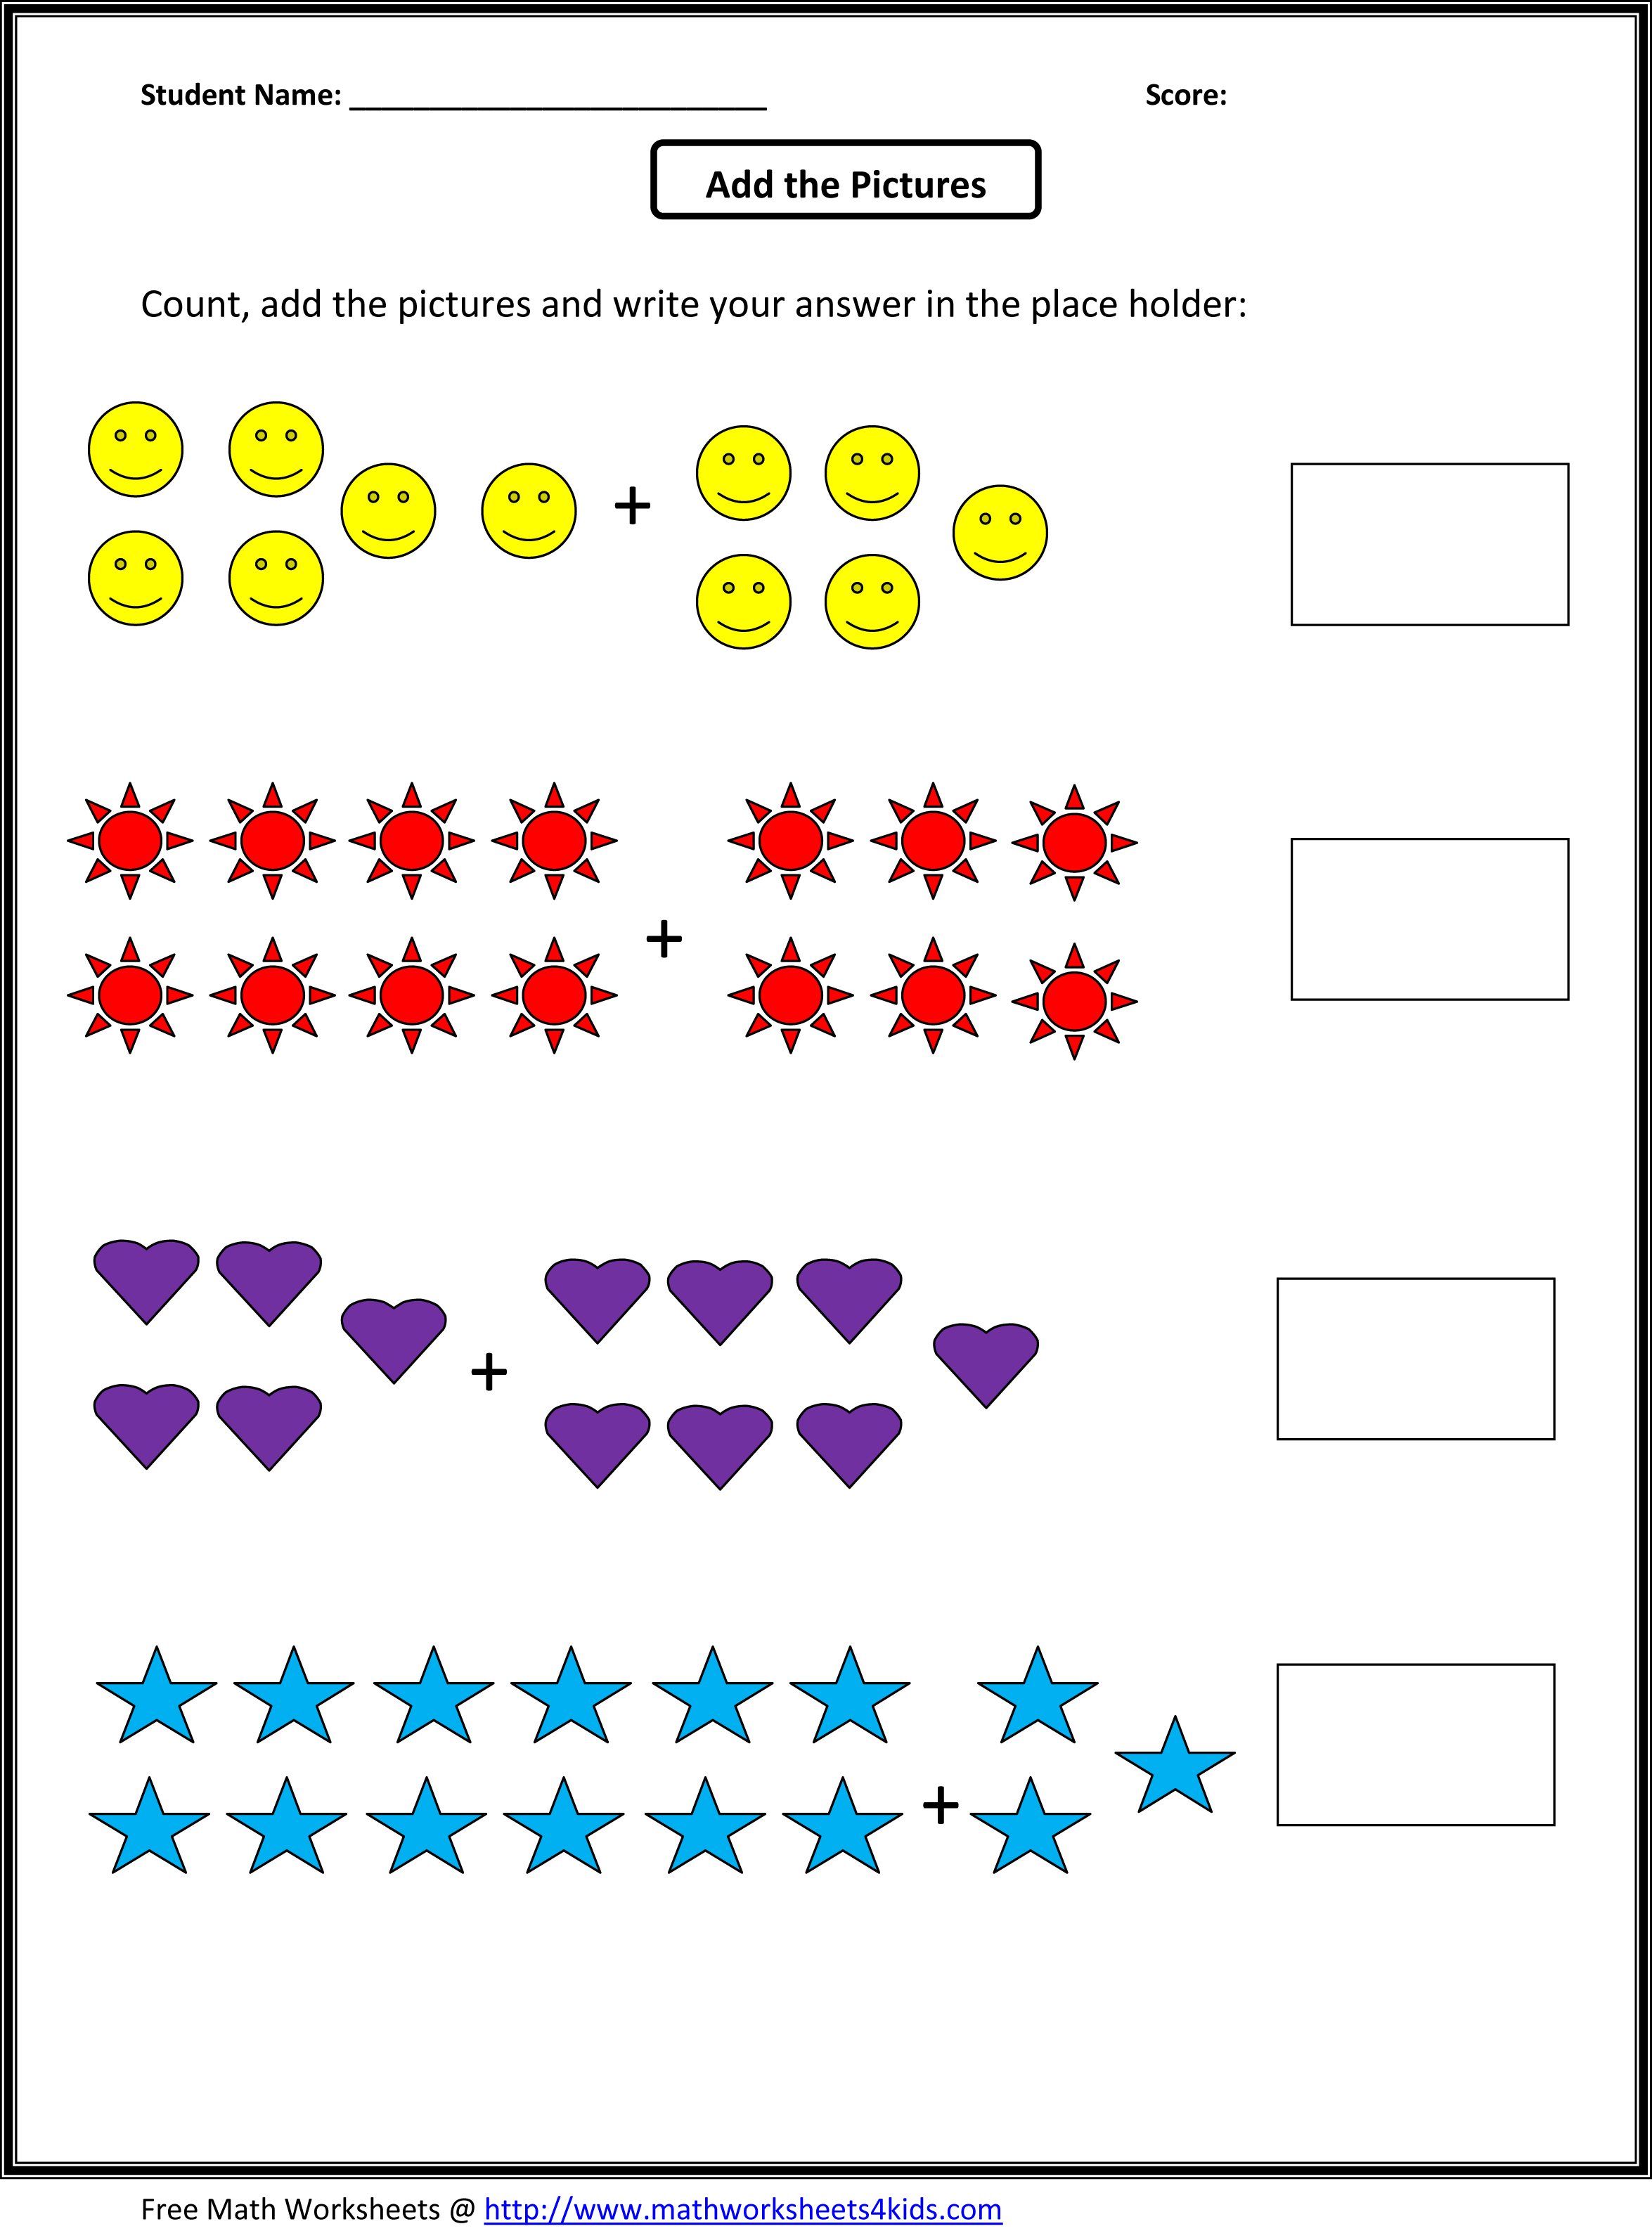 Weirdmailus  Seductive Grade  Maths Worksheet  Reocurent With Engaging Math Worksheets For St Grade Free  Reocurent With Lovely Mapping Coordinates Worksheets Also Fifth Grade Math Printable Worksheets In Addition Maths Fractions Worksheets And  Square Writing Worksheets As Well As Identifying Nouns And Verbs Worksheets Additionally Finding Gcf And Lcm Worksheets From Reocurentcom With Weirdmailus  Engaging Grade  Maths Worksheet  Reocurent With Lovely Math Worksheets For St Grade Free  Reocurent And Seductive Mapping Coordinates Worksheets Also Fifth Grade Math Printable Worksheets In Addition Maths Fractions Worksheets From Reocurentcom